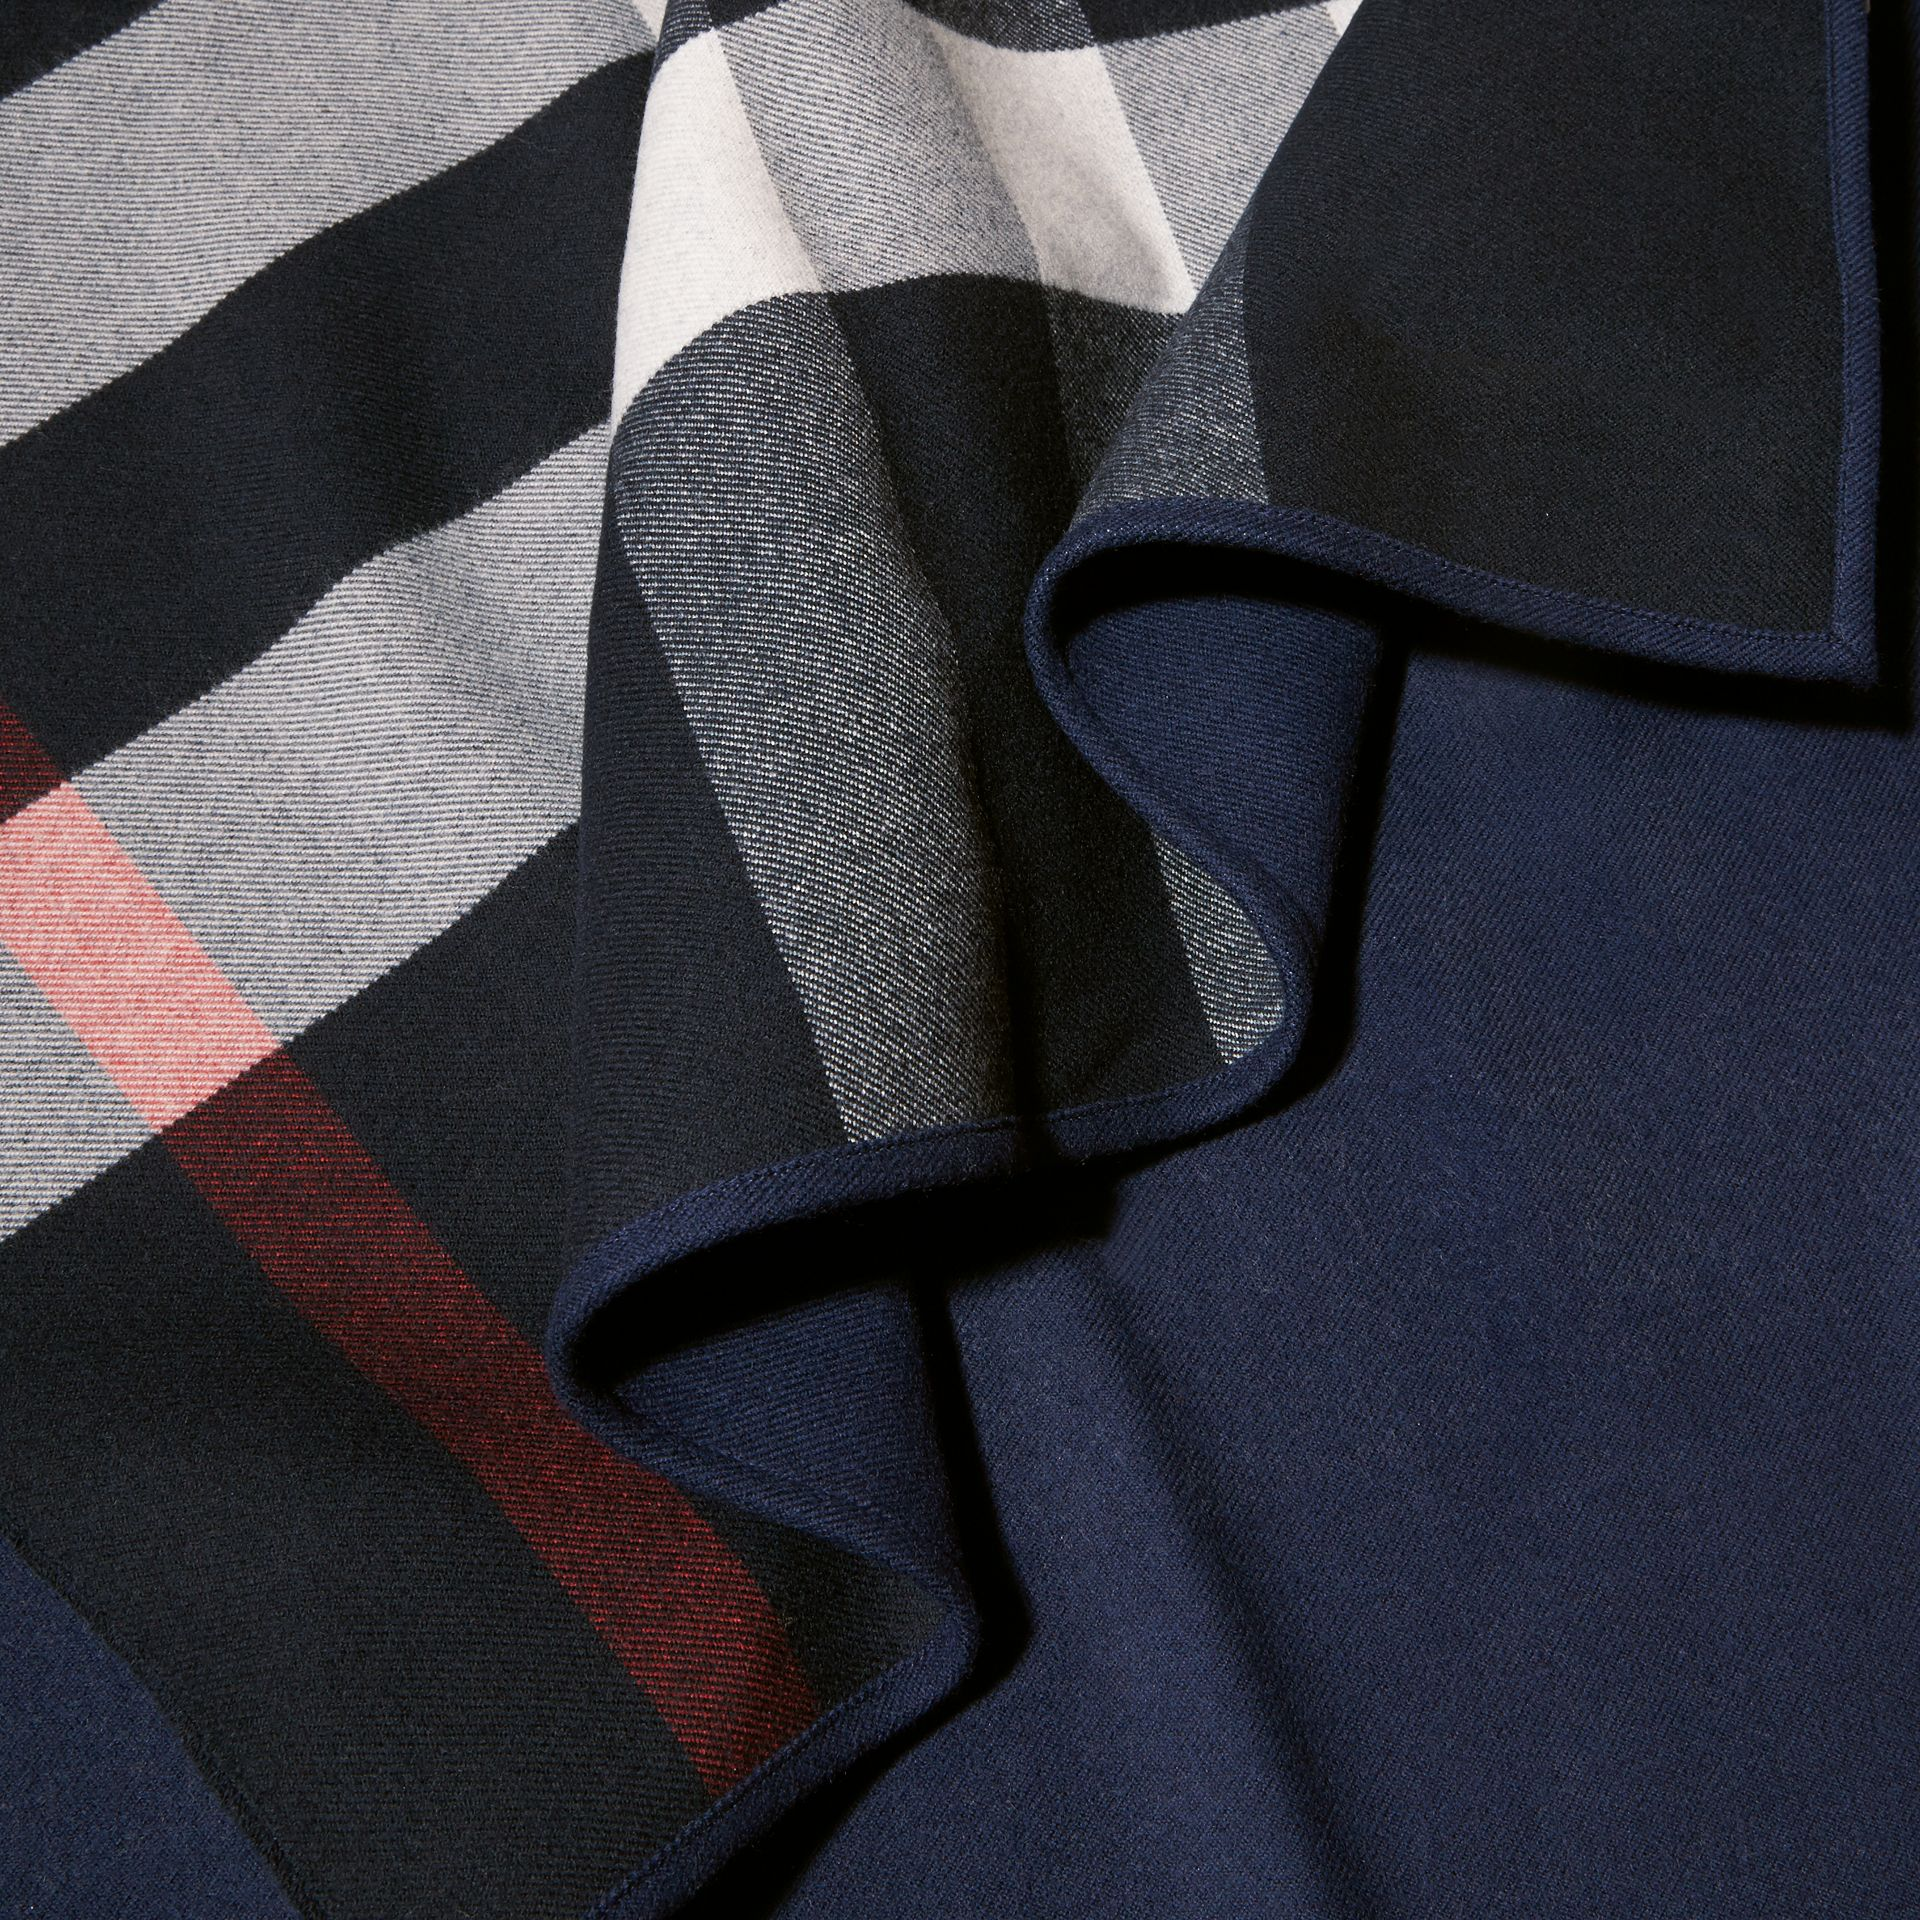 Reversible Check Merino Wool Poncho in Navy - Women | Burberry - gallery image 2